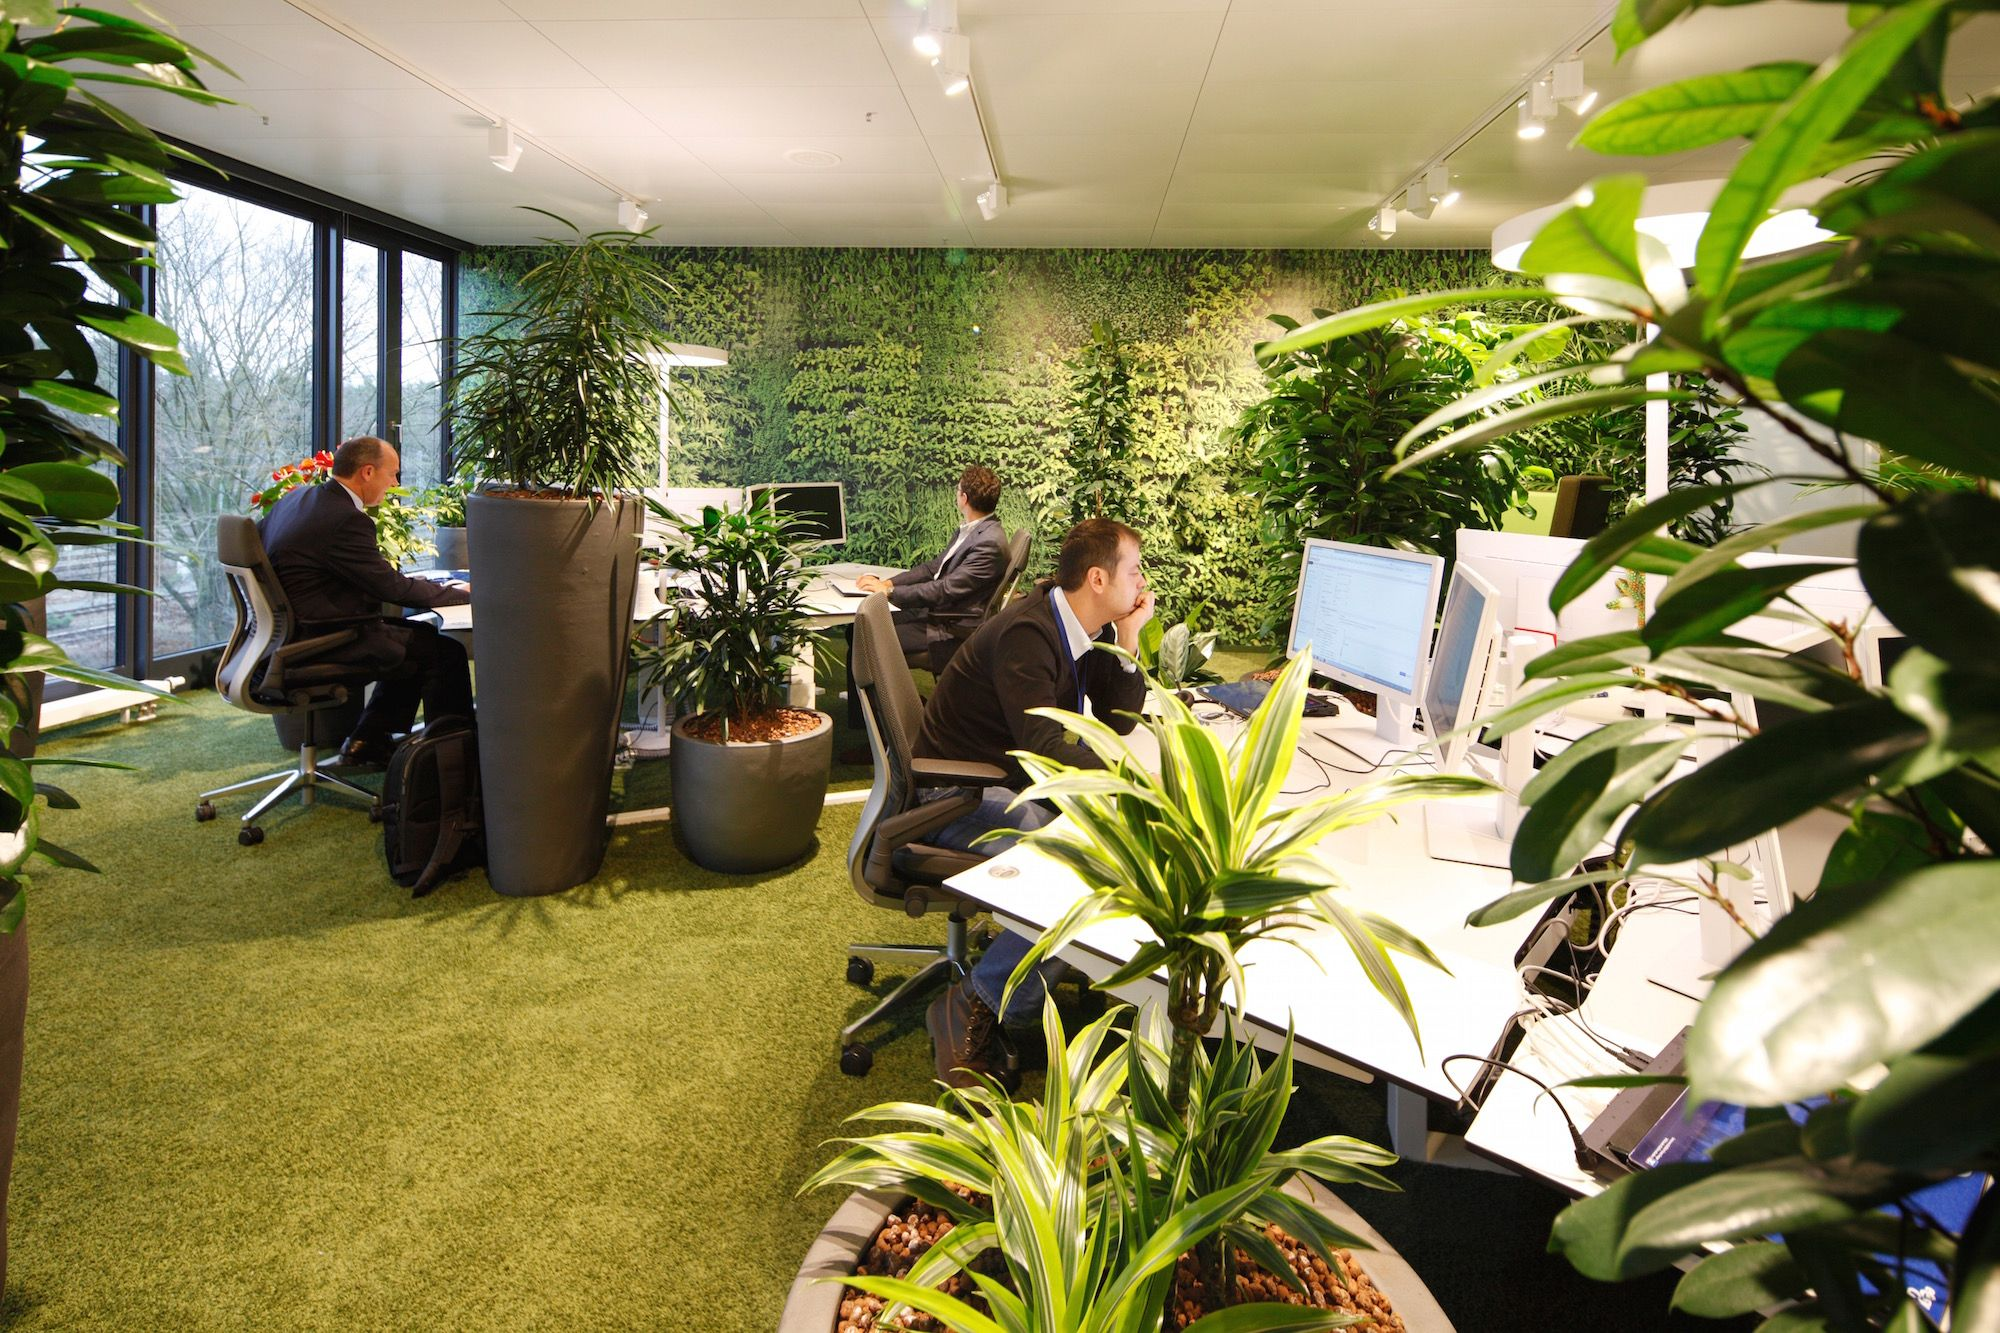 office greenery. Interesting Greenery EasyCredit HQ  Work Area  Garden Typology EasyCredit Office Plants And Office Greenery E